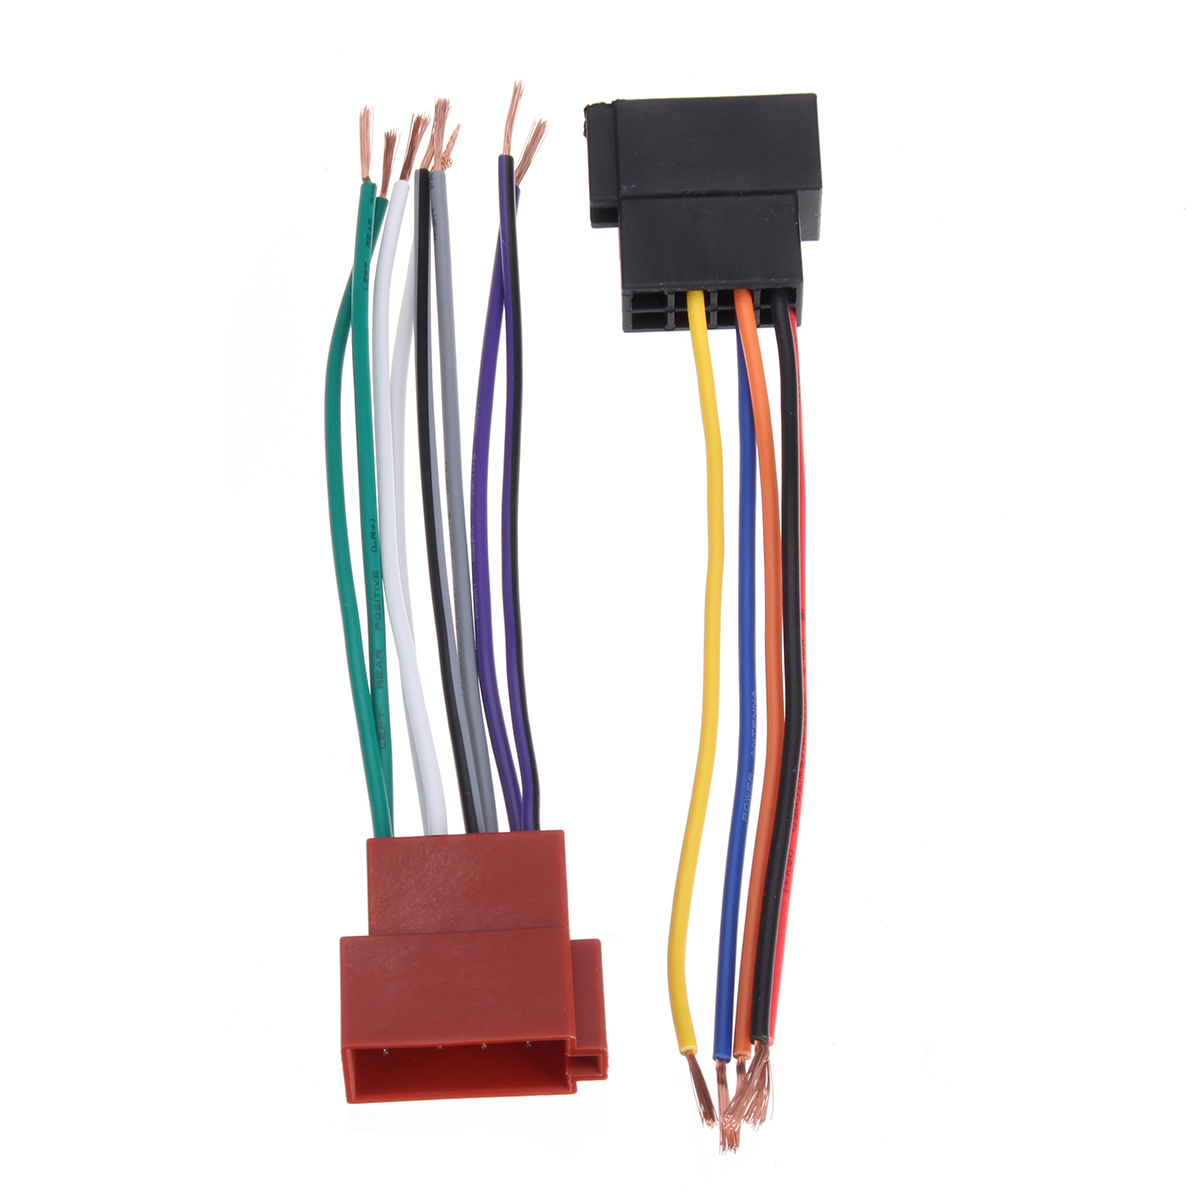 hight resolution of universal car stereo female iso radio plug adapter wiring cable stereo harness